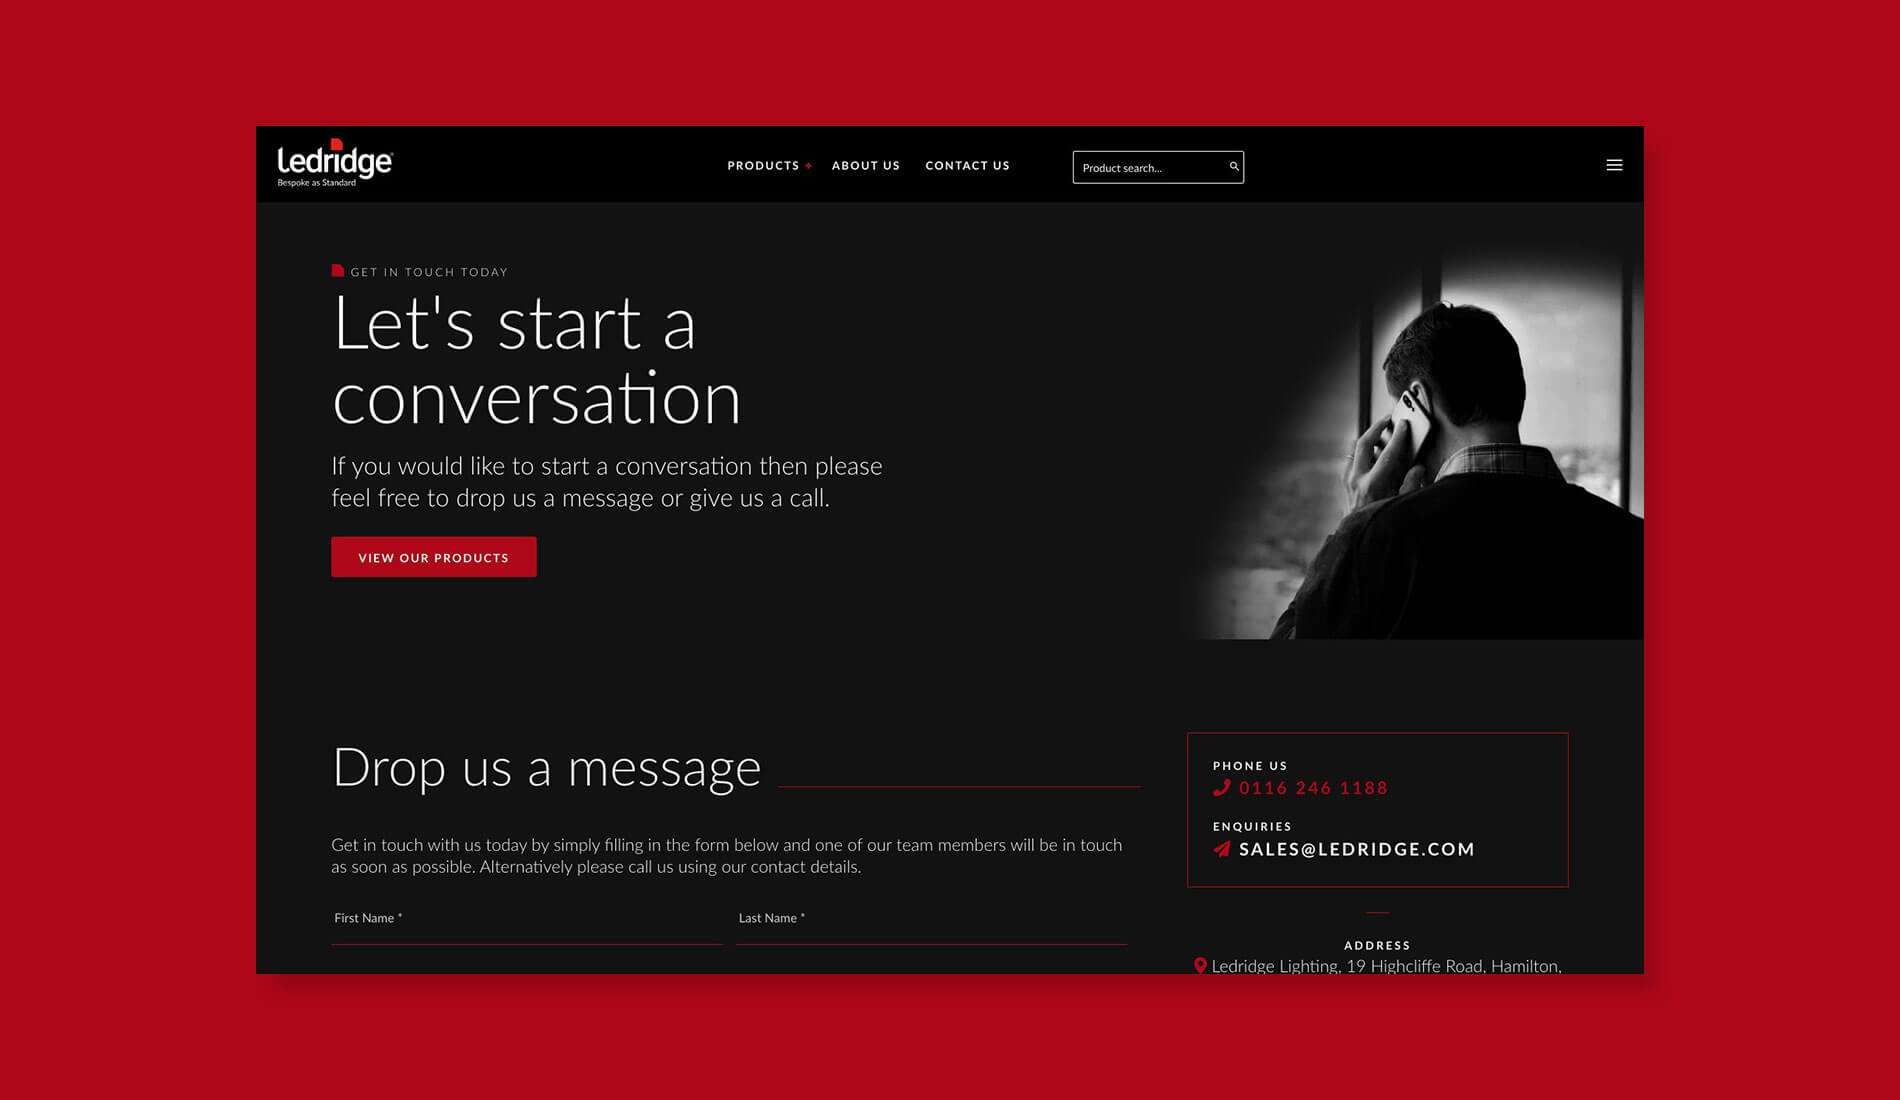 Ledridge contact page website design on flat red background